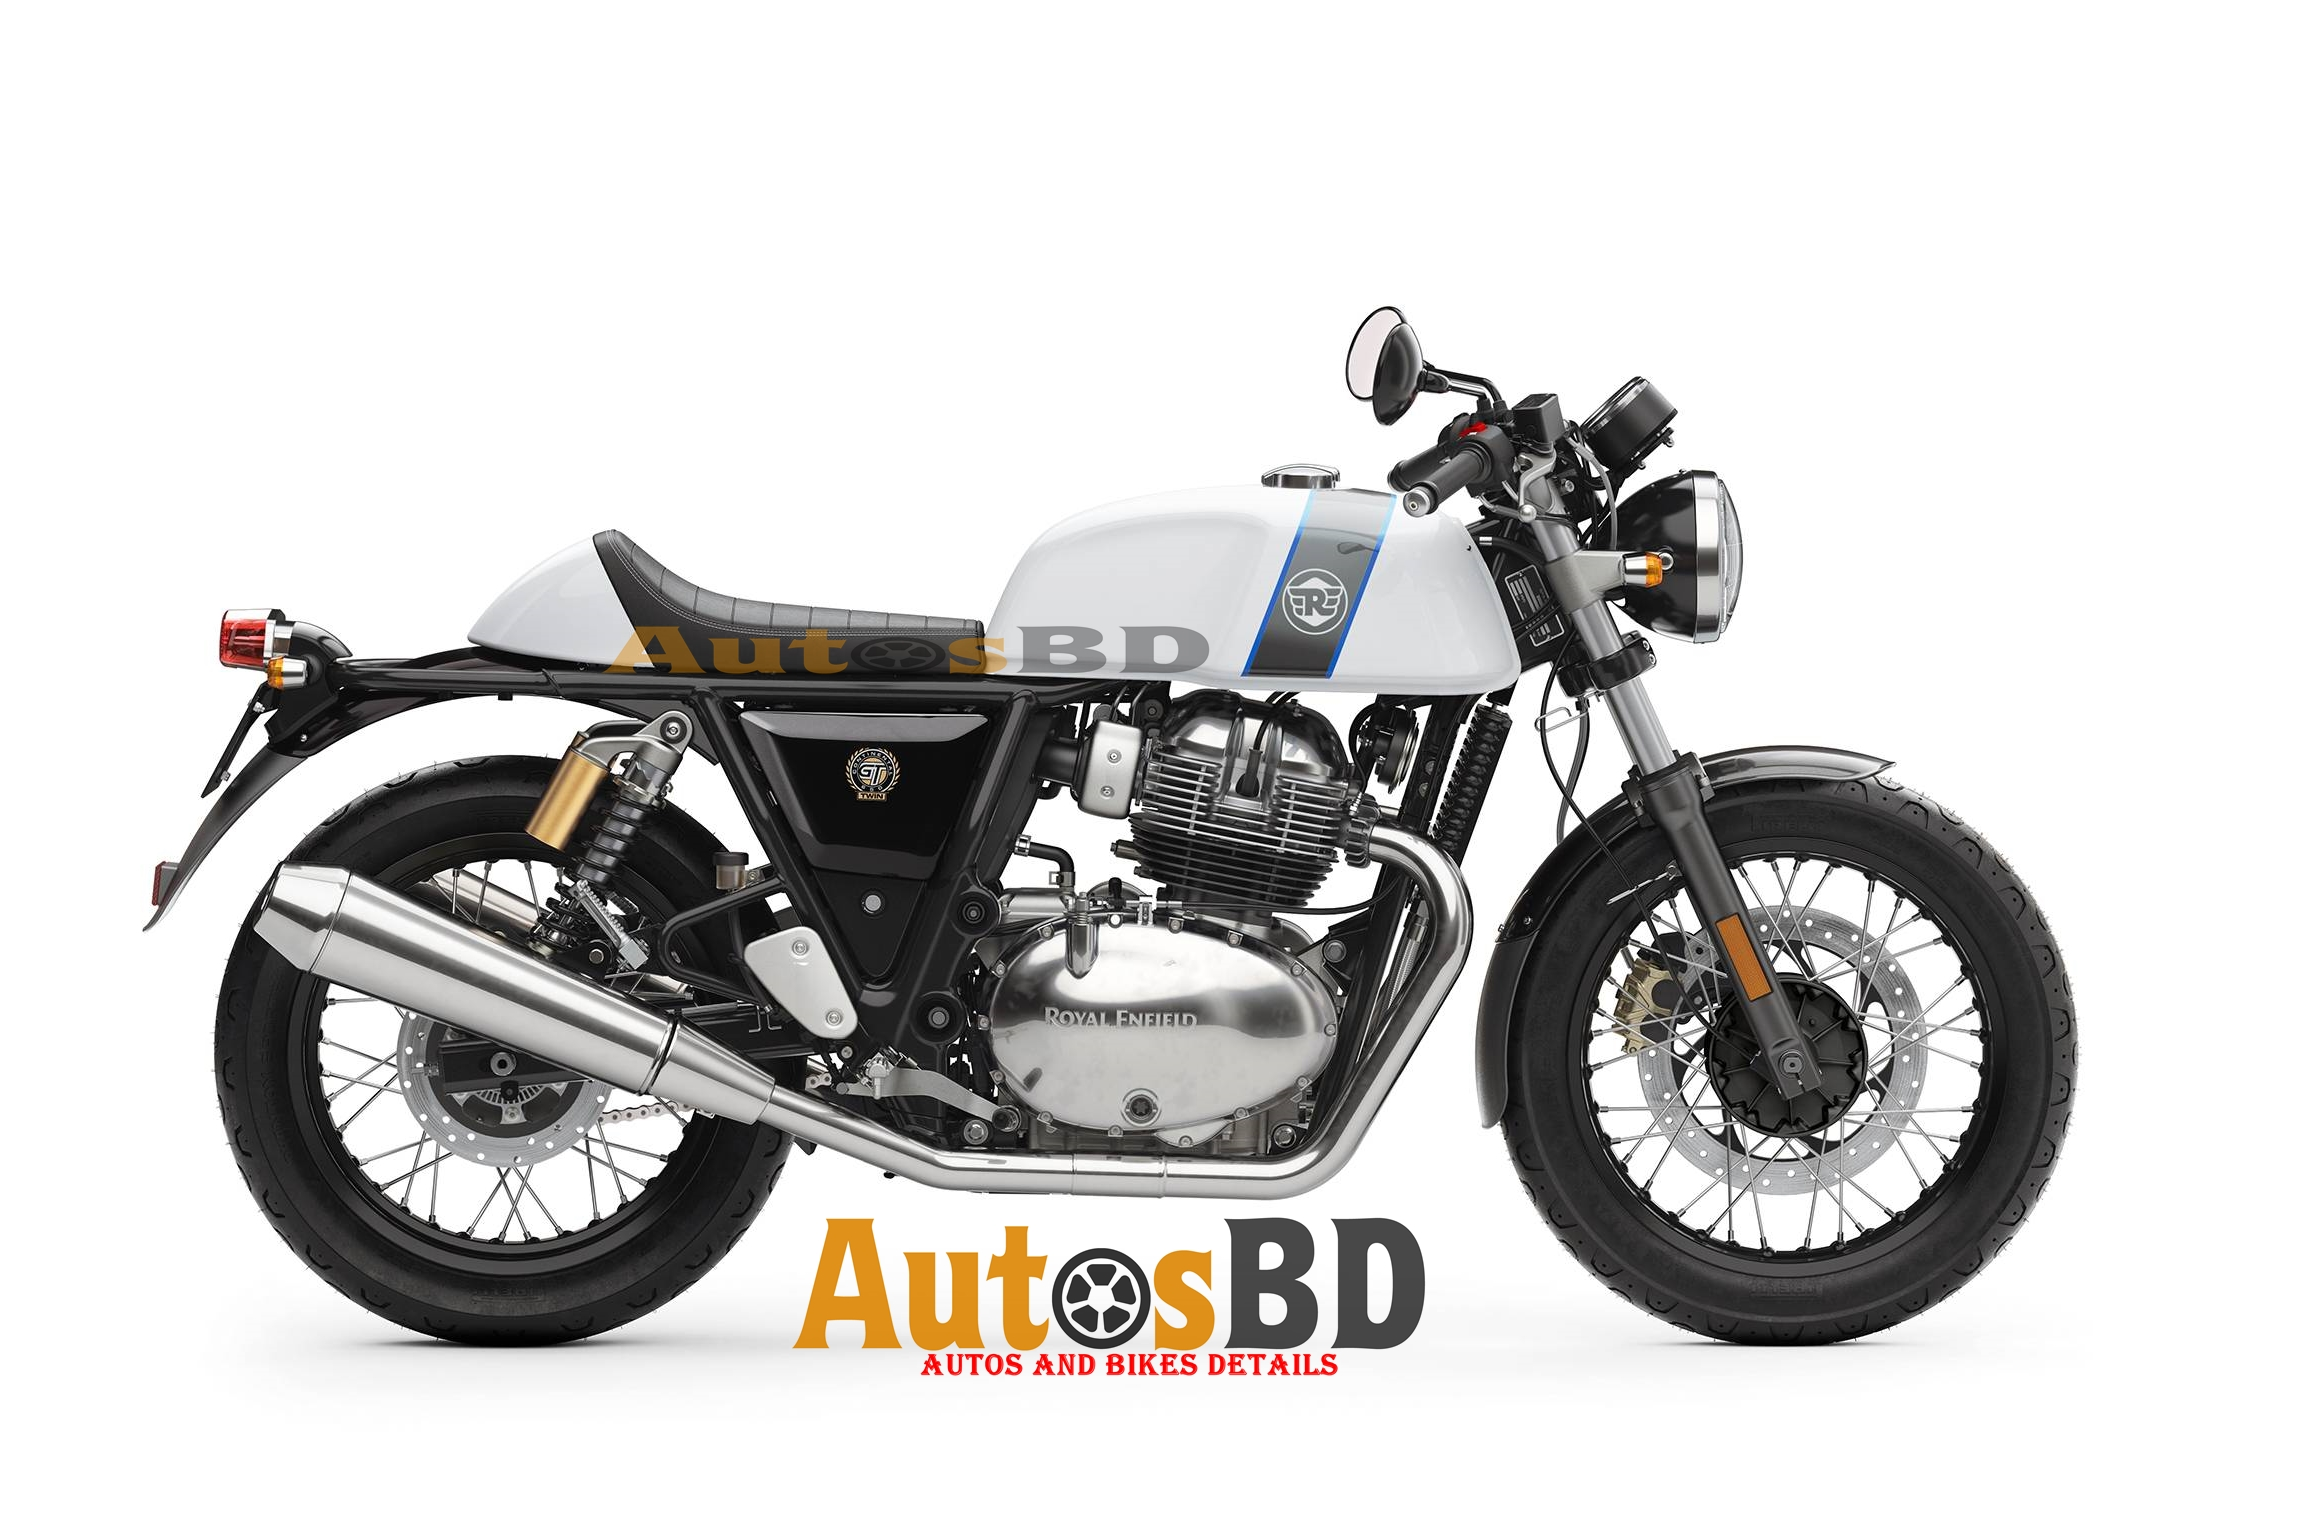 Royal Enfield Continental GT 650 Motorcycle Price in India